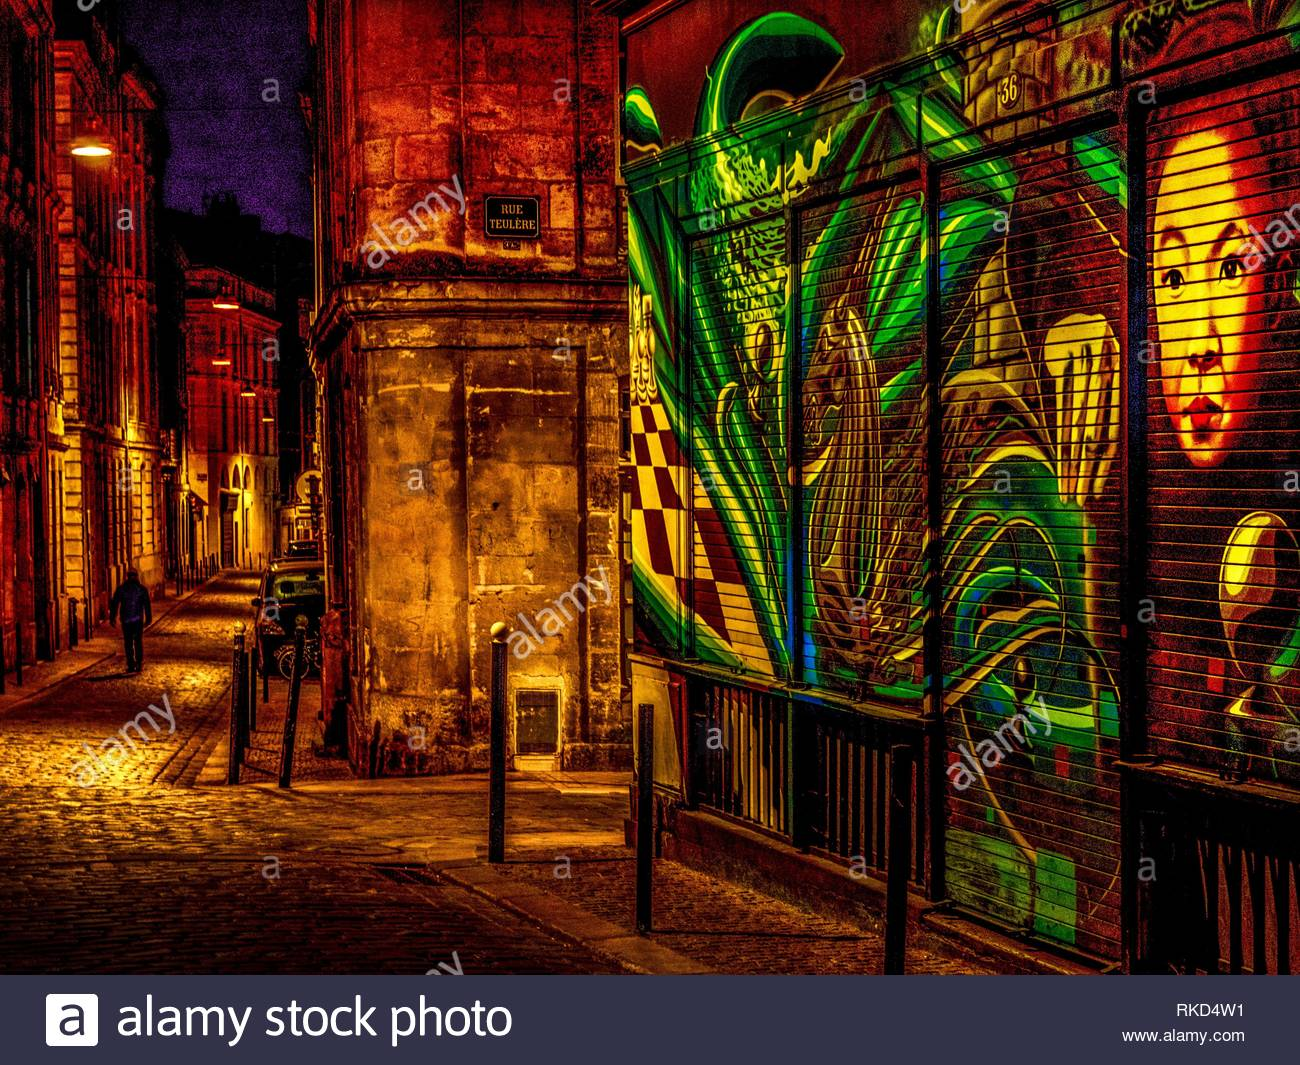 France, Nouvelle aquitaine, Gironde. Rue Buhan, in the old Bordeaux. - Stock Image